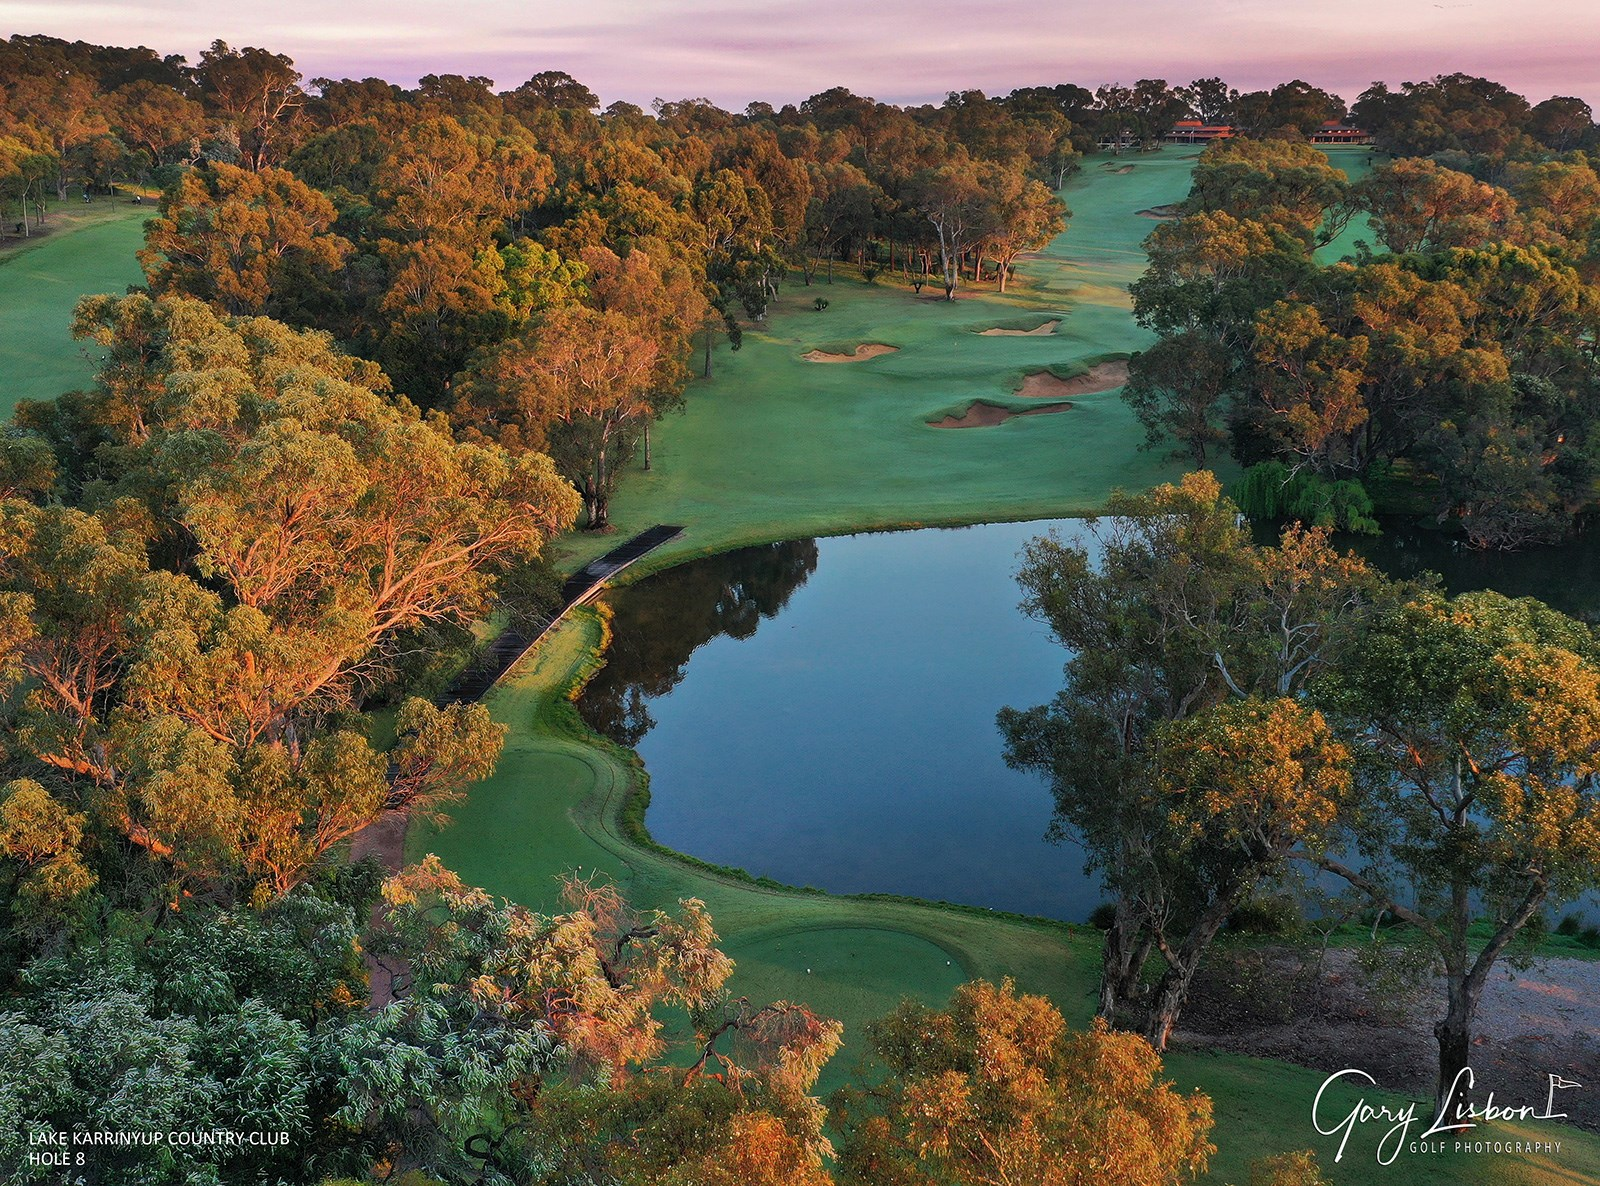 Lake Karrinyup Country Club Hole 8